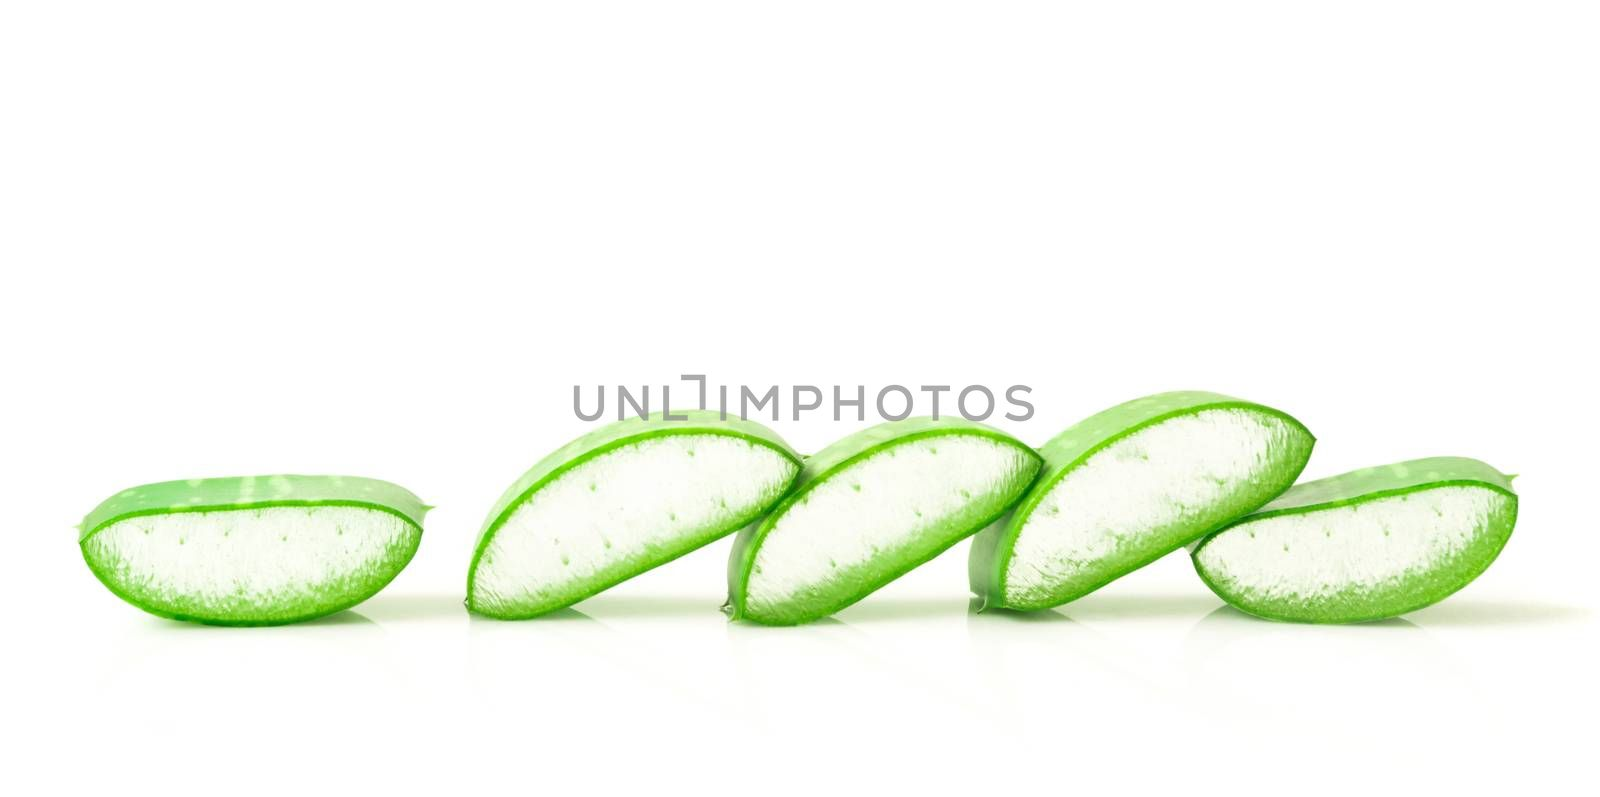 Aloe vera leaves with sliced on white background for beauty and healthy product concept